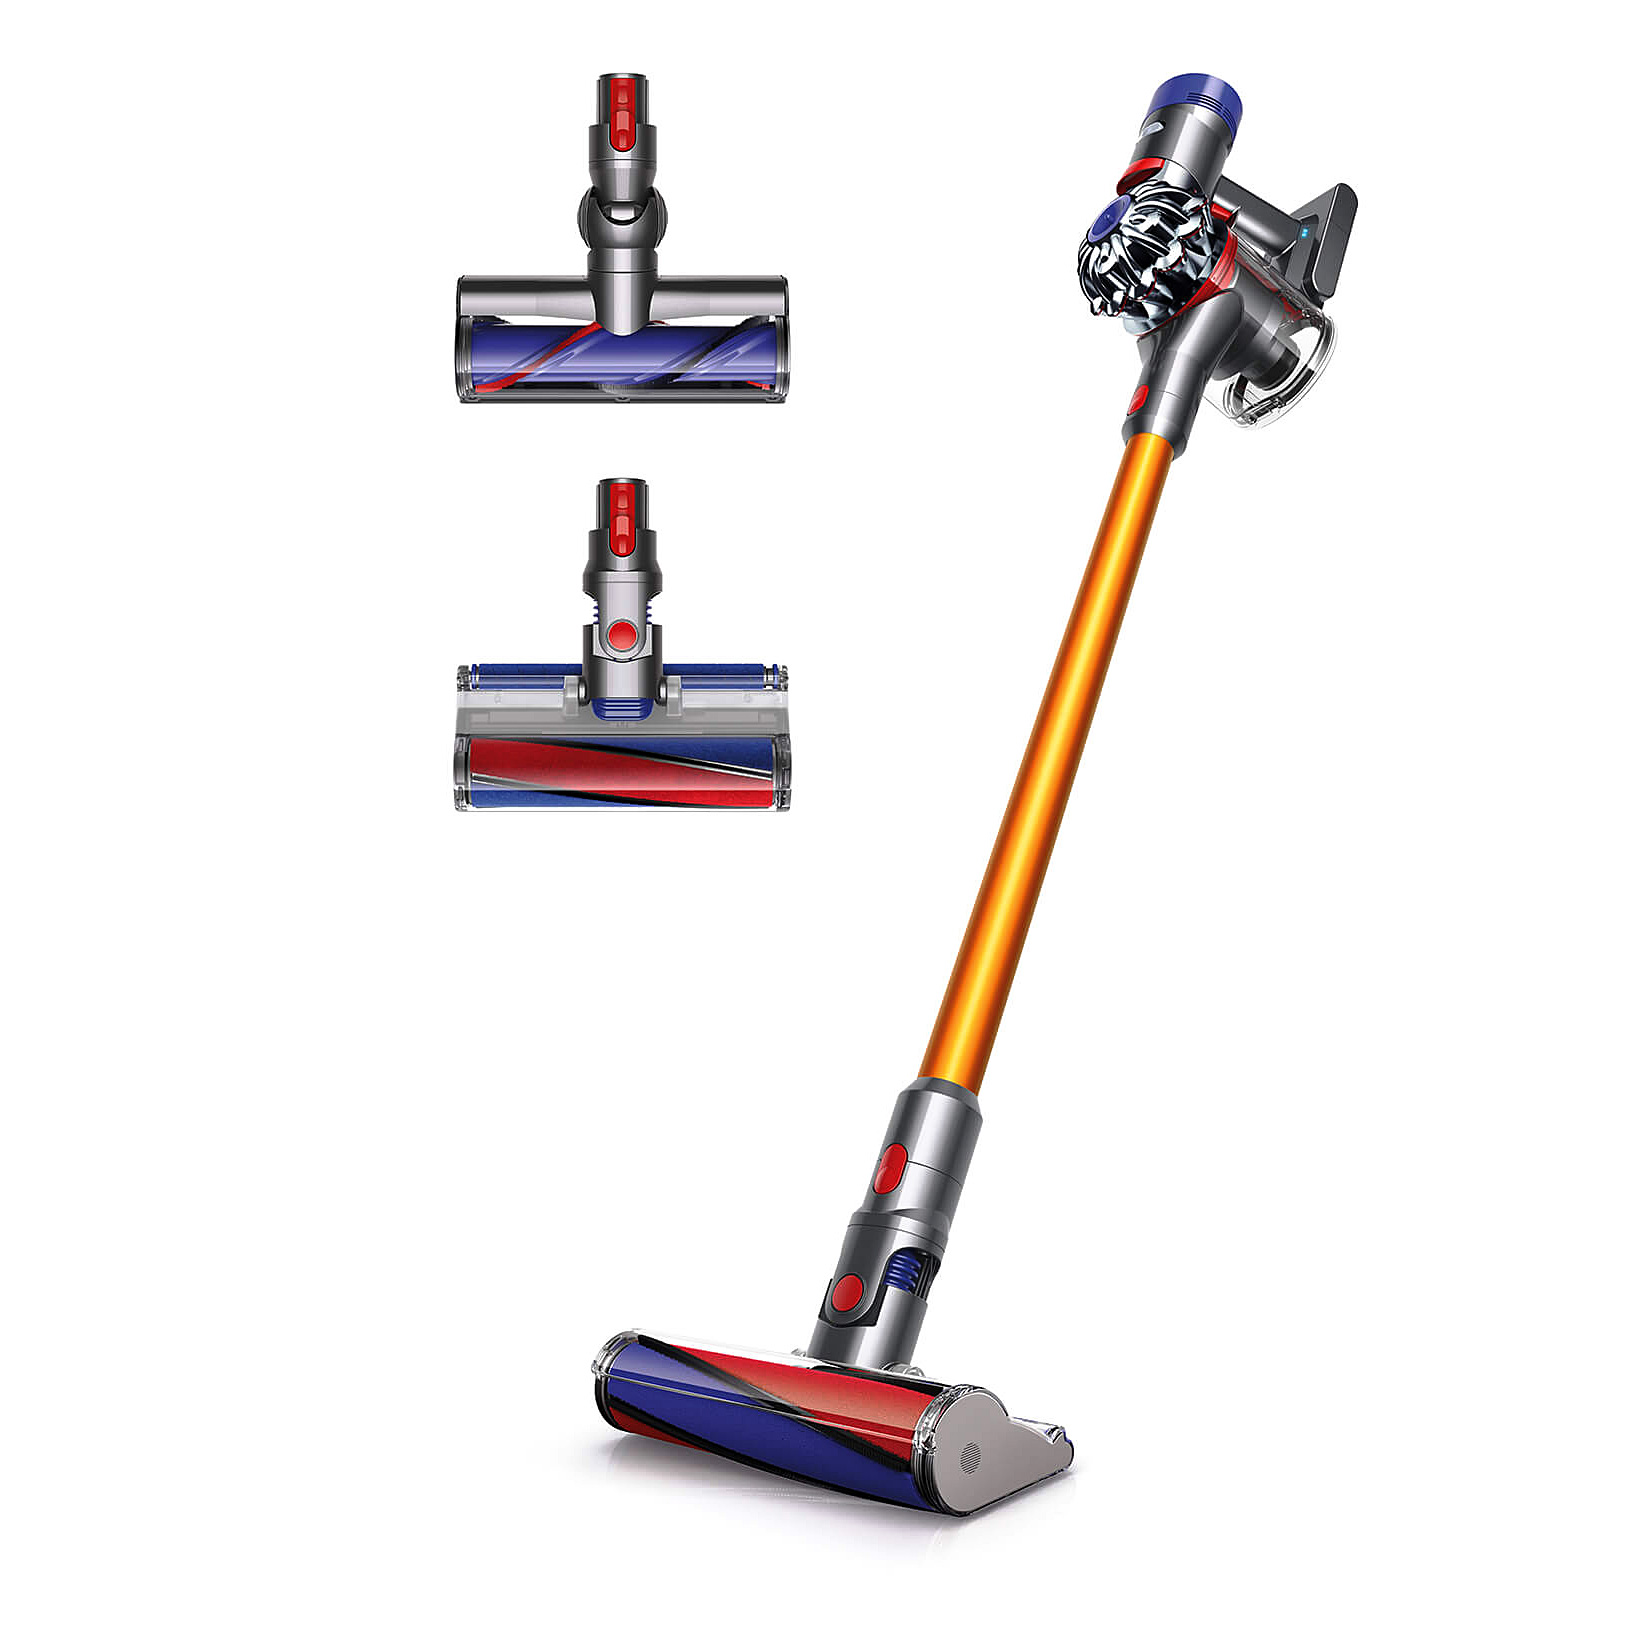 Dyson v8 absolute avito canister vacuum cleaner dyson